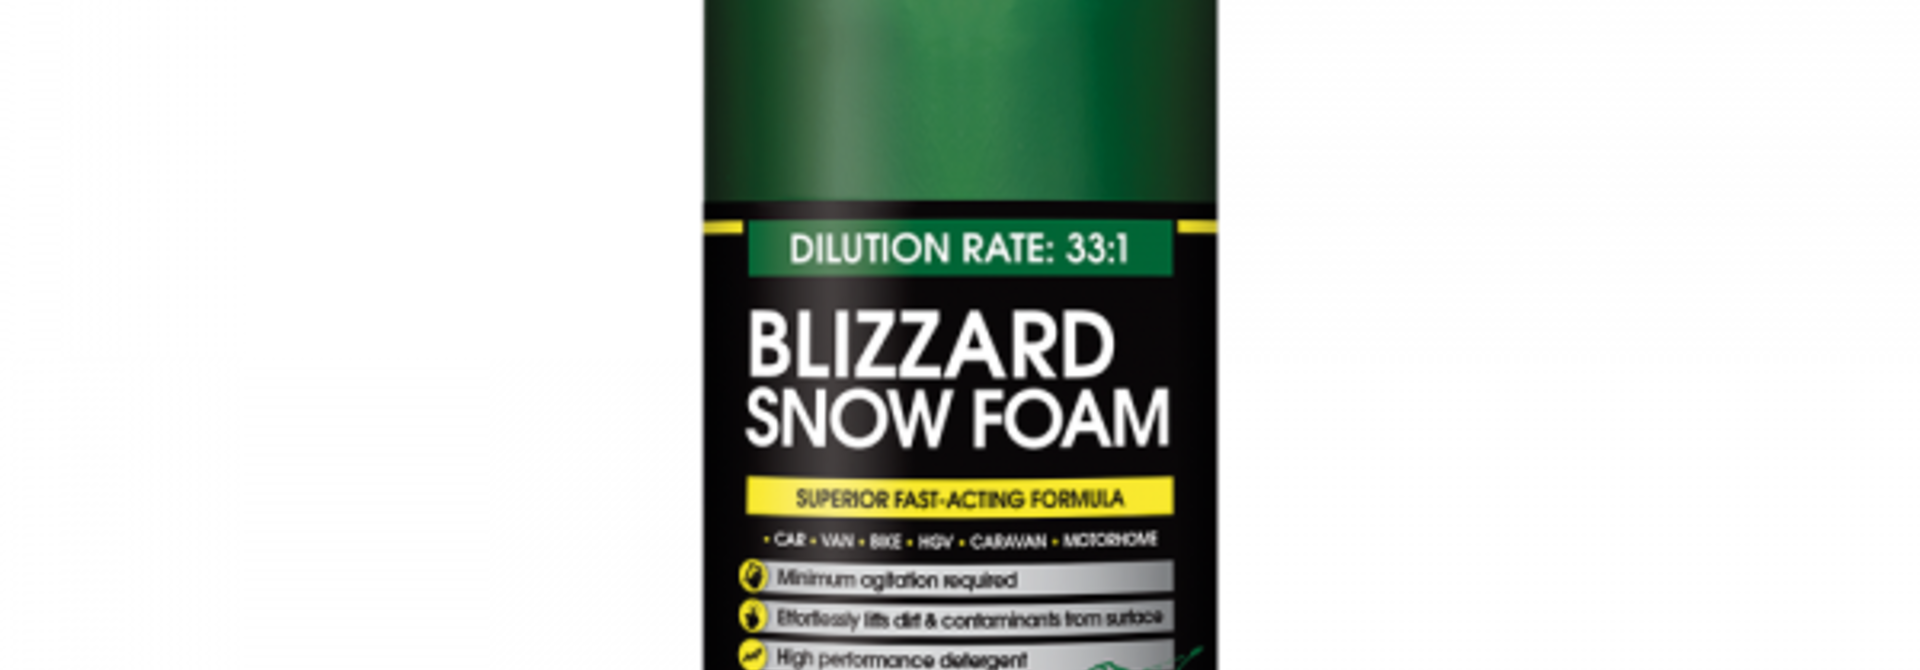 Blizzard Snow Foam